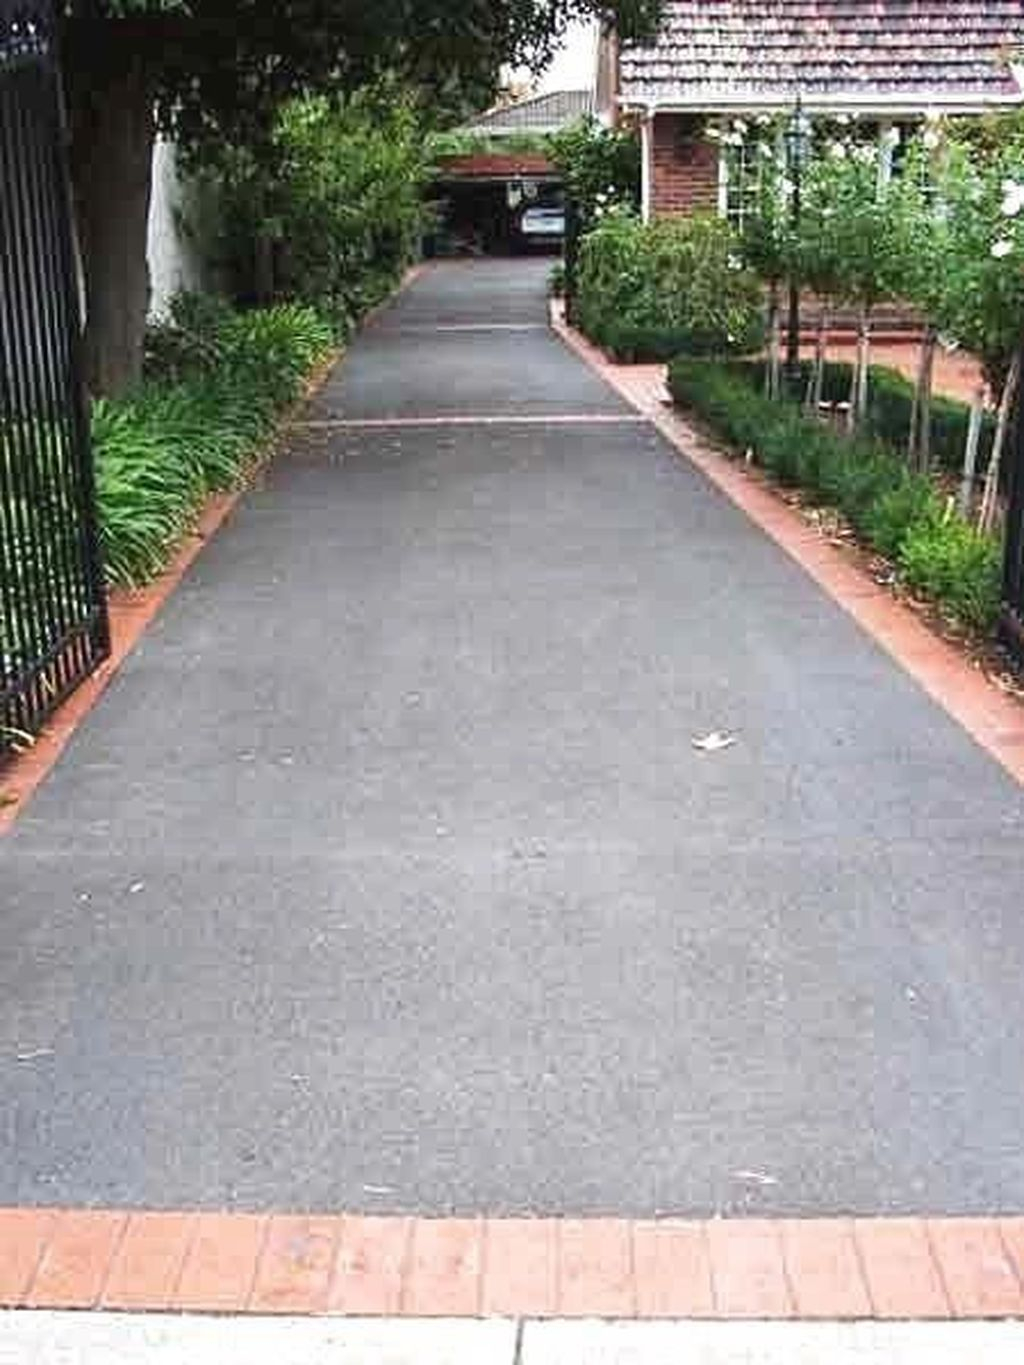 Fabulous Driveway Landscaping Design Ideas For Your Home To Try Asap 25